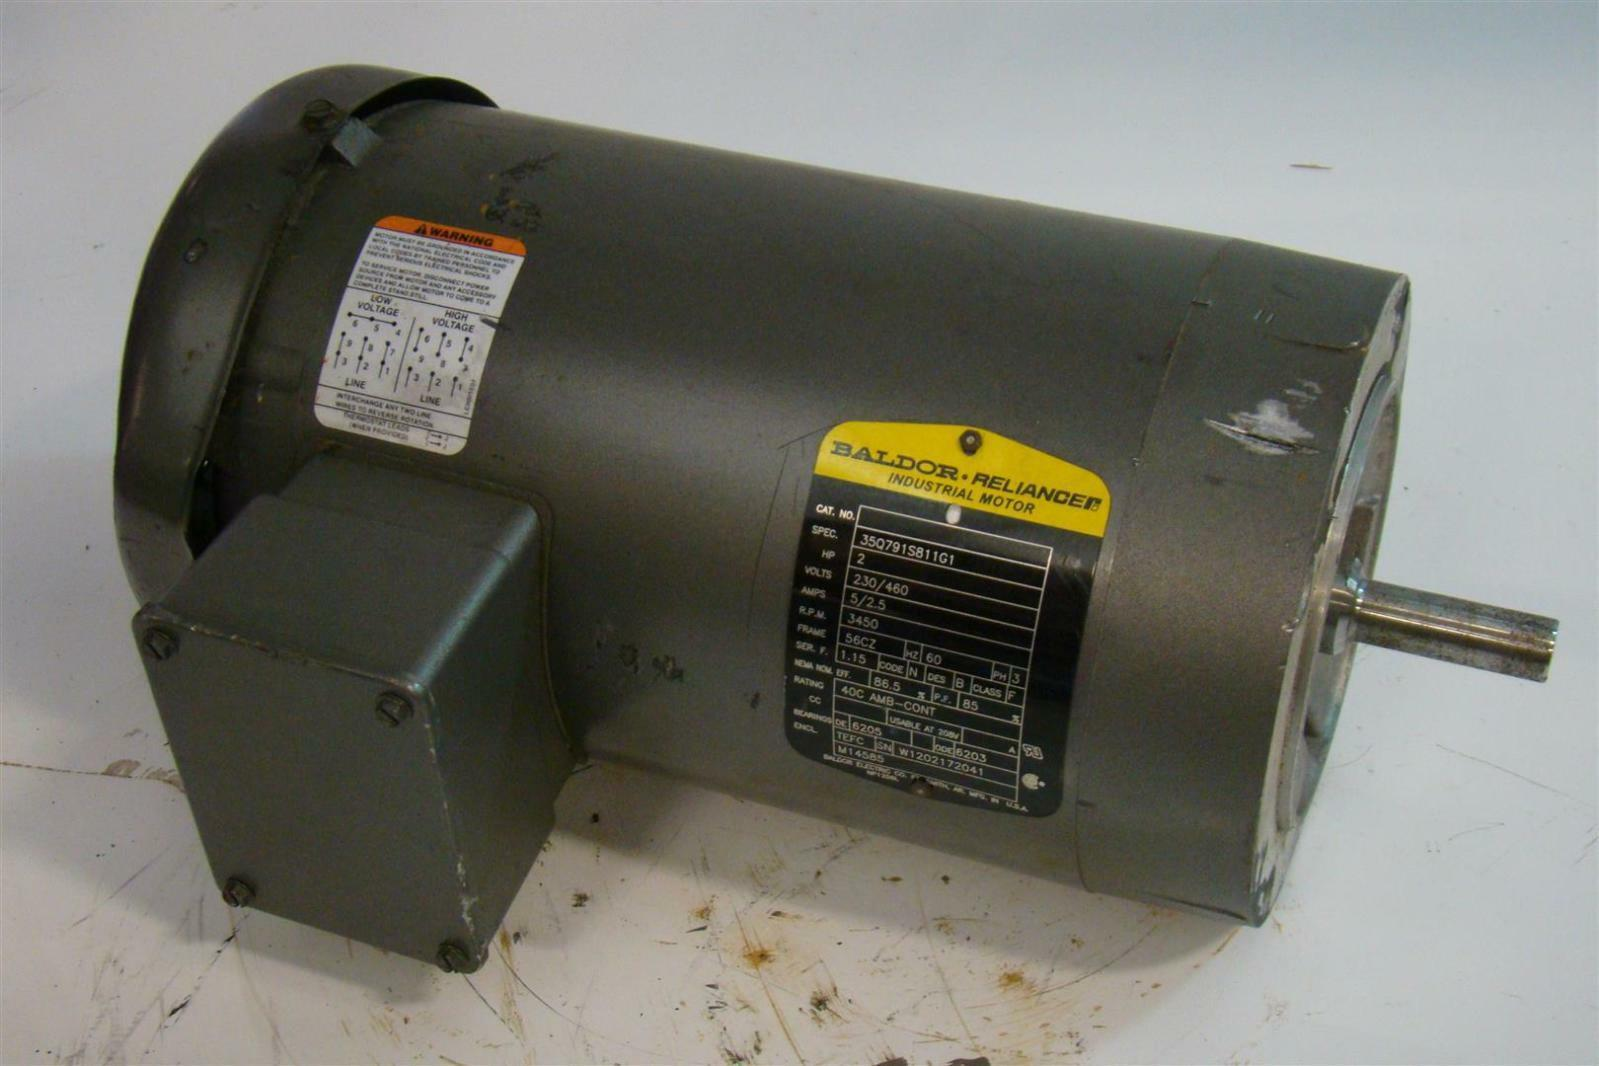 Baldor reliancer electric motor 2hp 230 460v 5 2 5amps ph3 for Used industrial electric motors